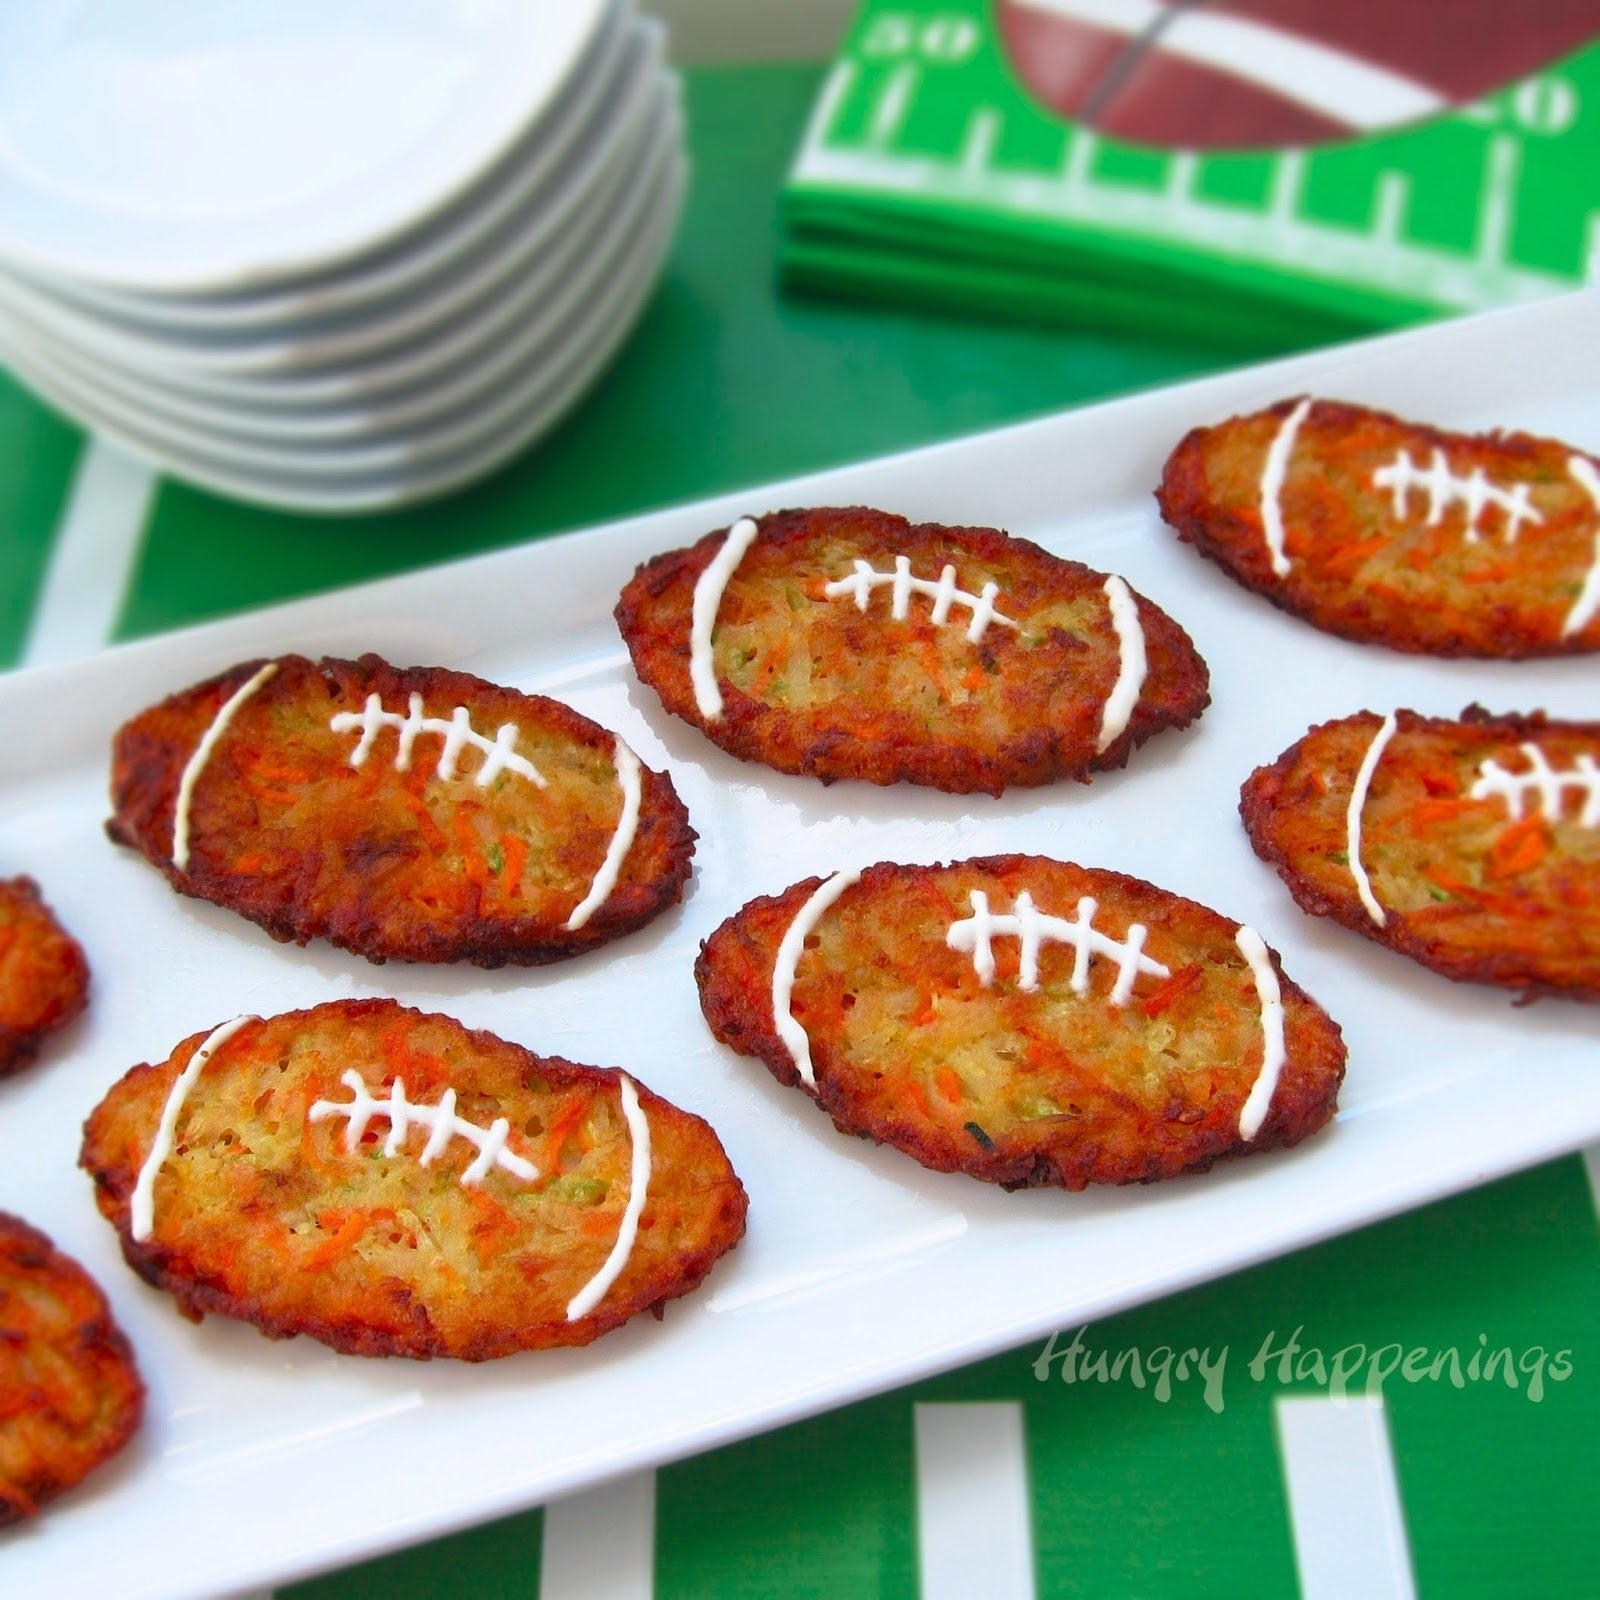 10 Spectacular Super Bowl Food Ideas Appetizers football shaped zucchini fritters aka mucver fun super bowl 2021